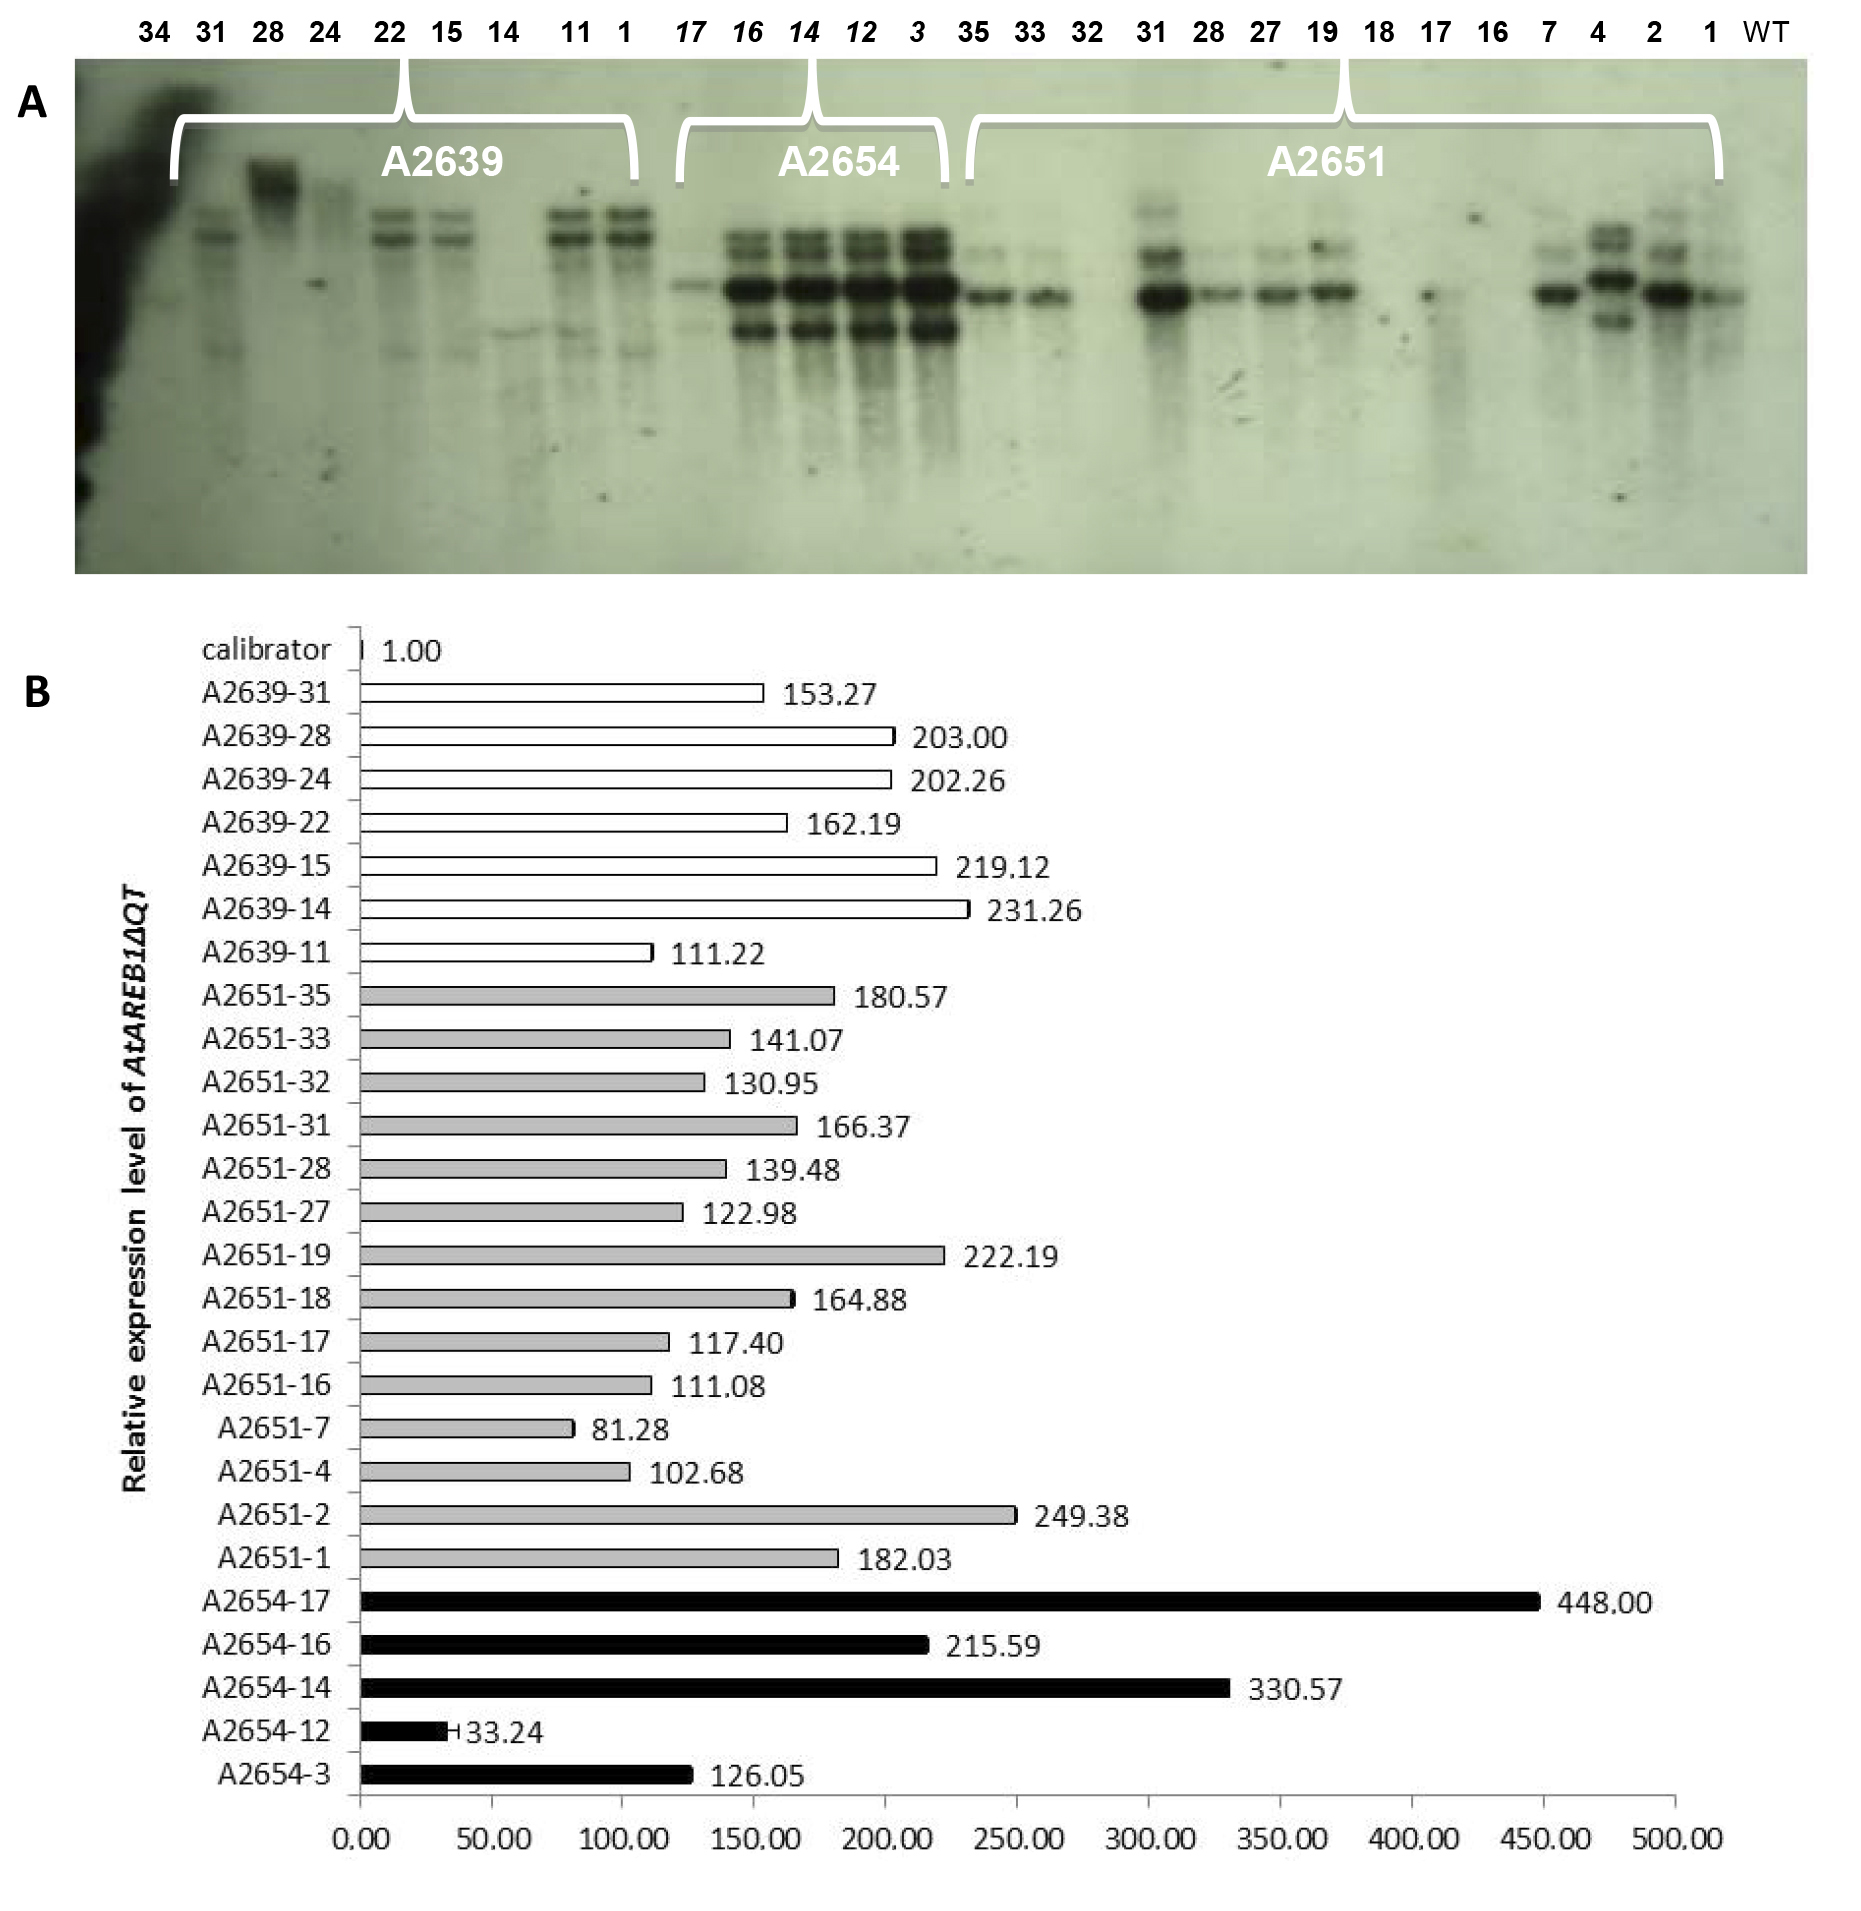 J.P. Leite et al. 6280 lines that were selected for phenotypic and physiological studies (A2639.14, A2651.2, and A2654.14). The expression of the transgene in the low-copy lines A2651.2 and A2639.